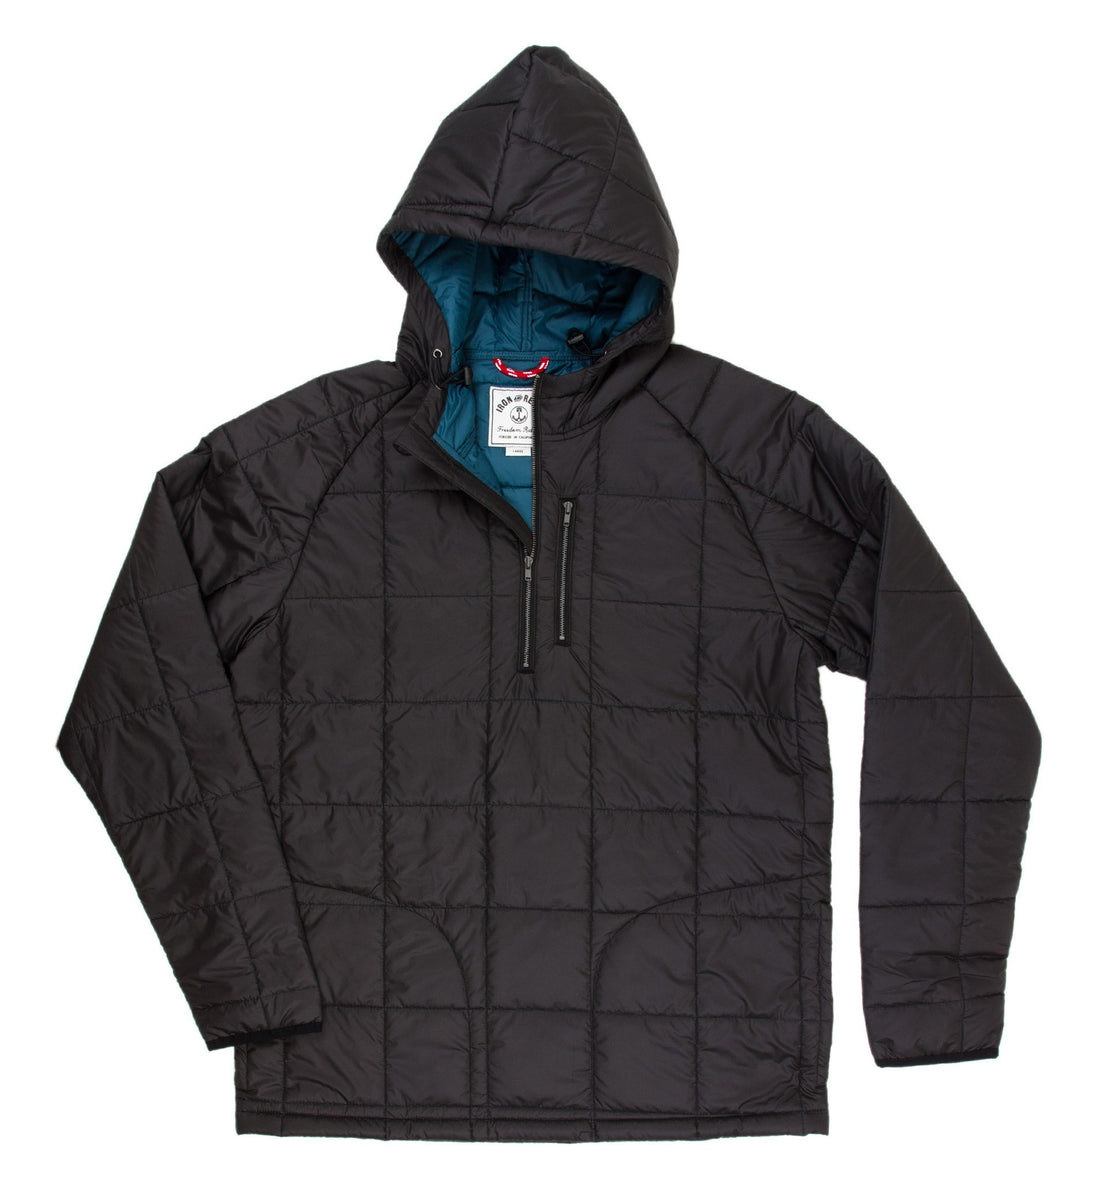 INR Rogue Pullover - Outerwear - Iron and Resin